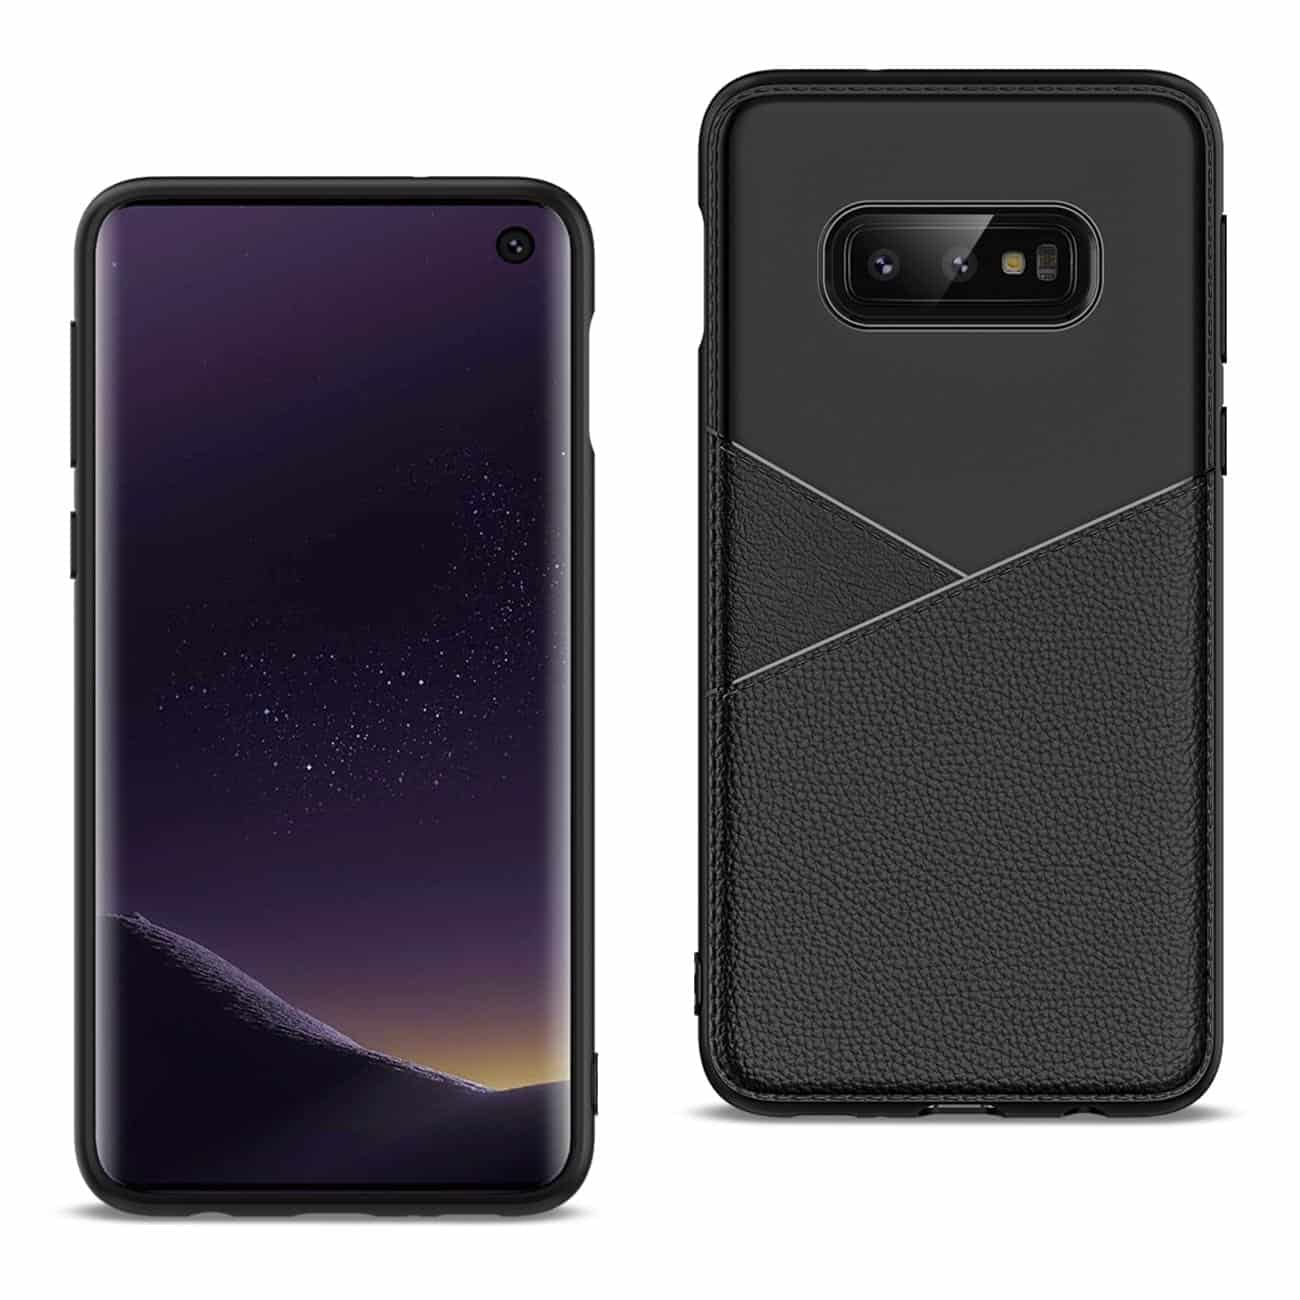 SAMSUNG GALAXY S10 Lite Soft Case in Black